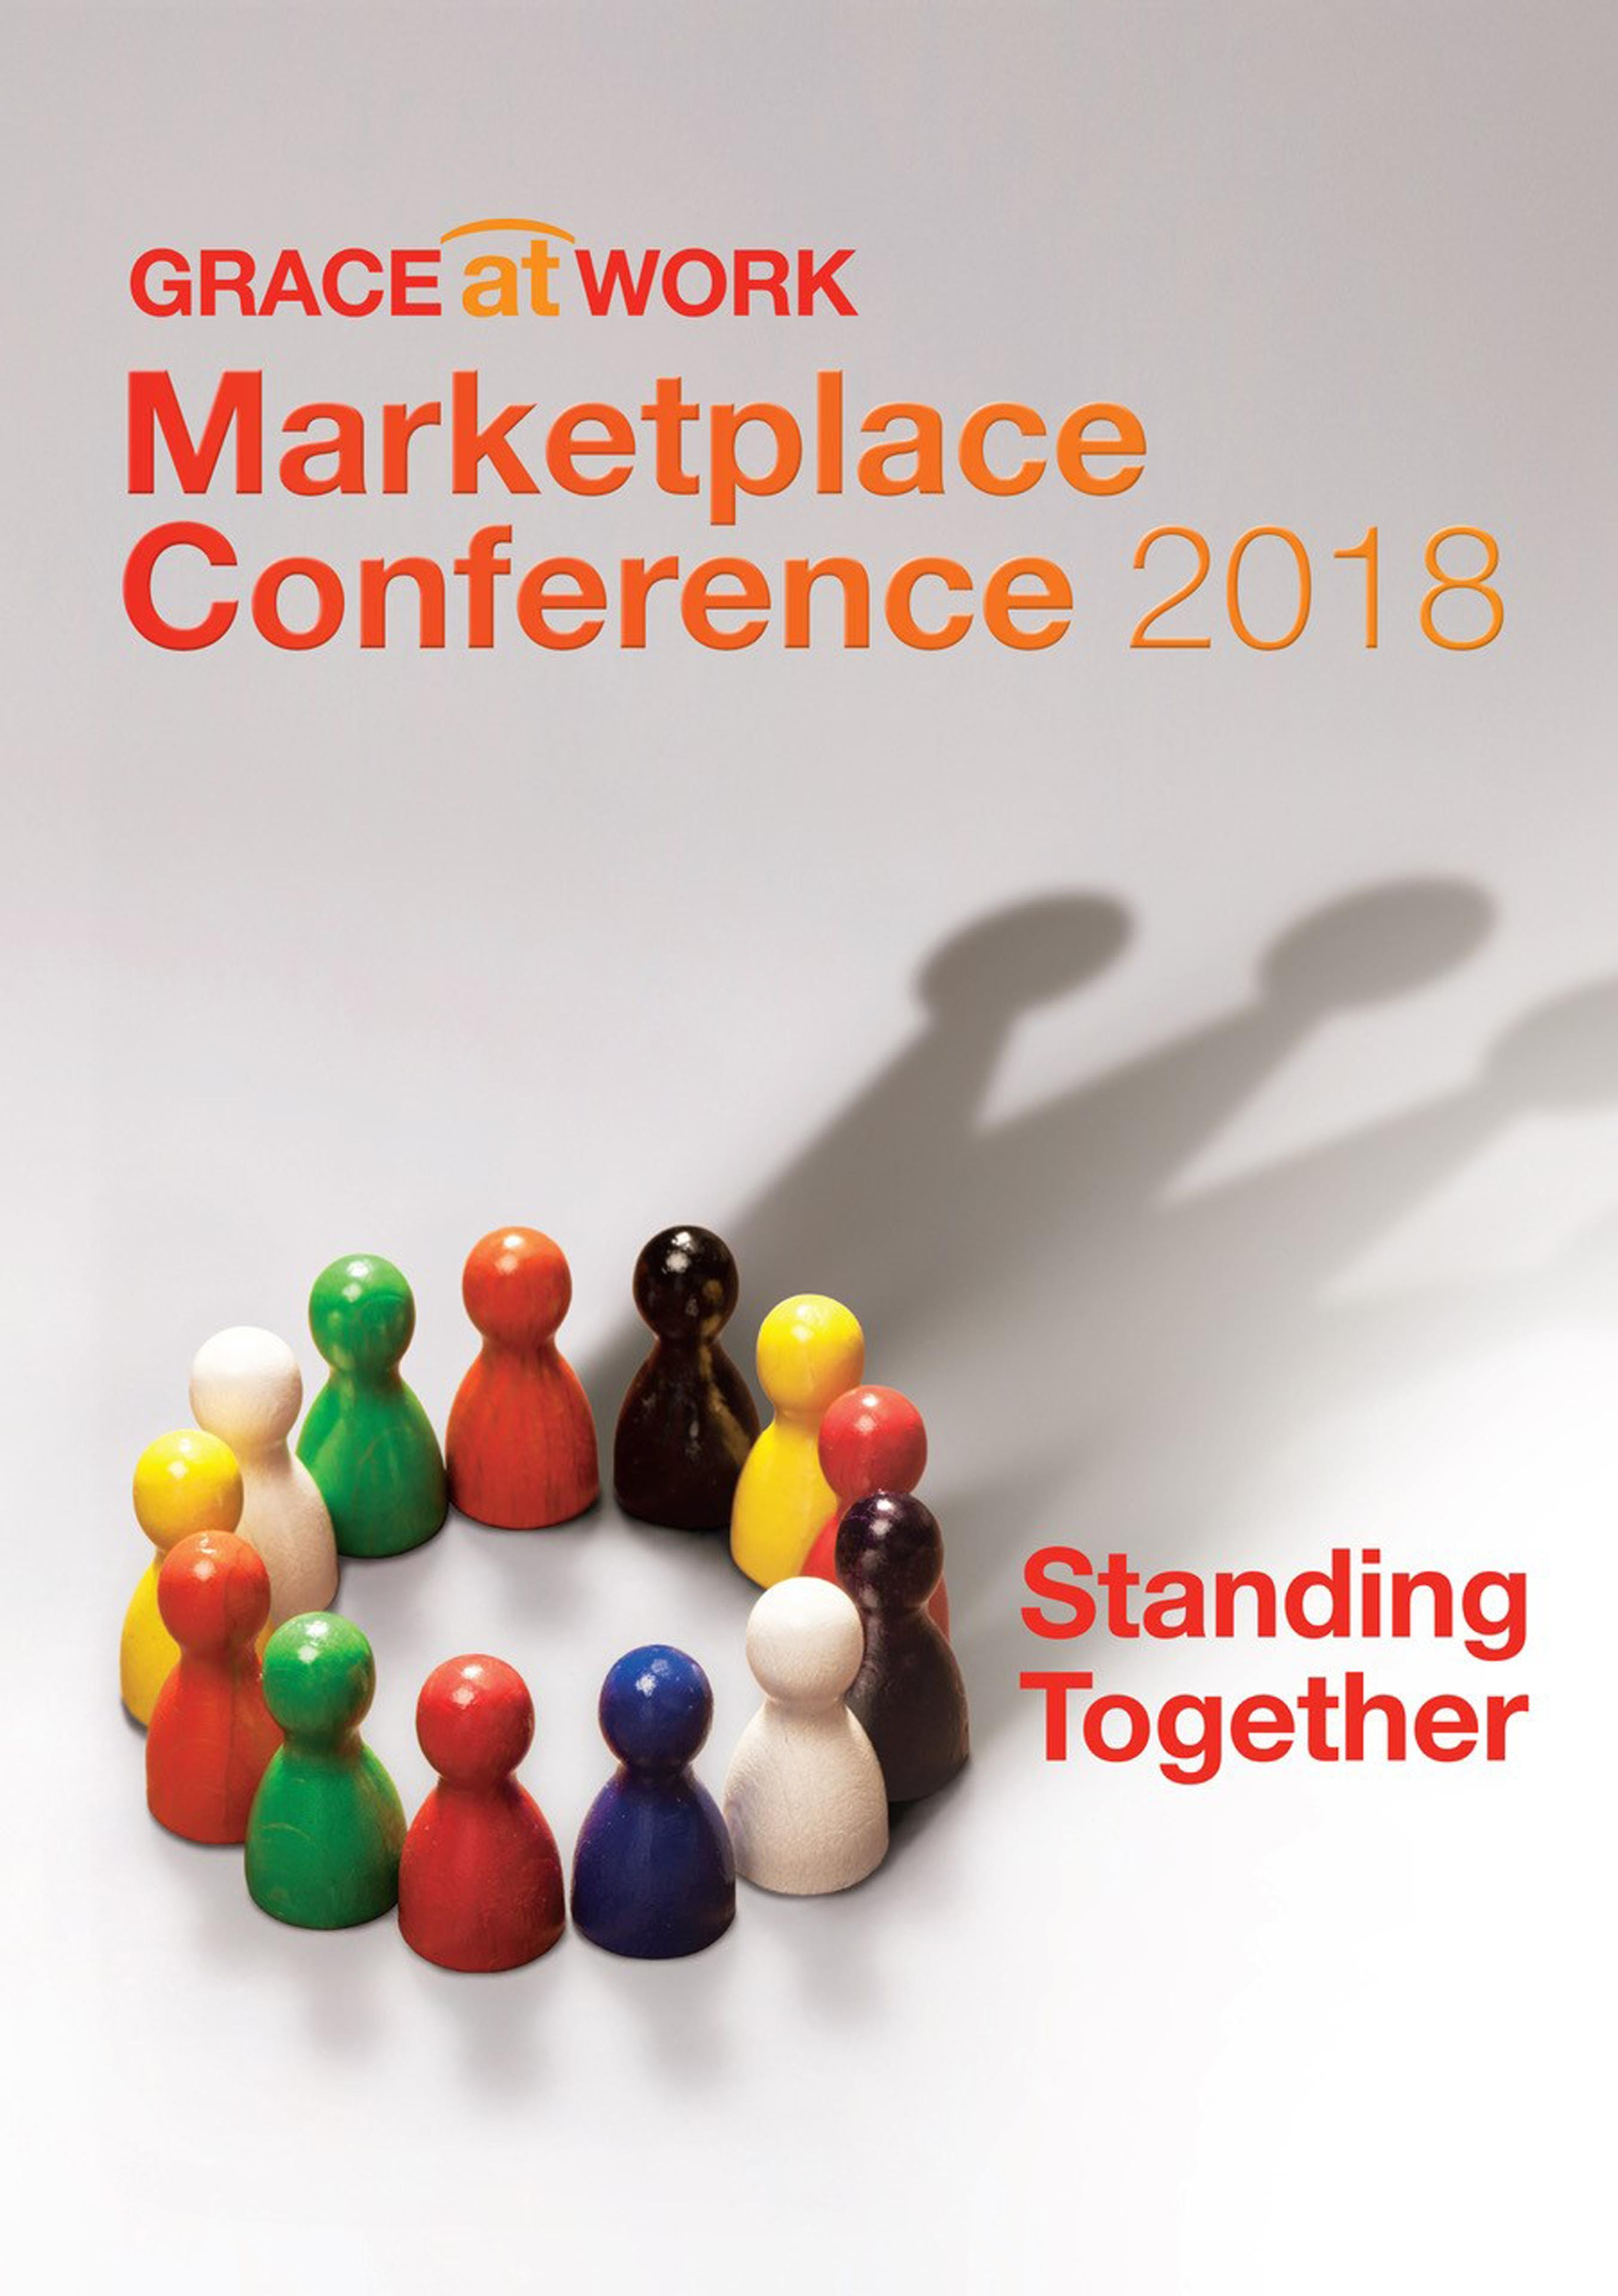 Marketplace Conference 2018